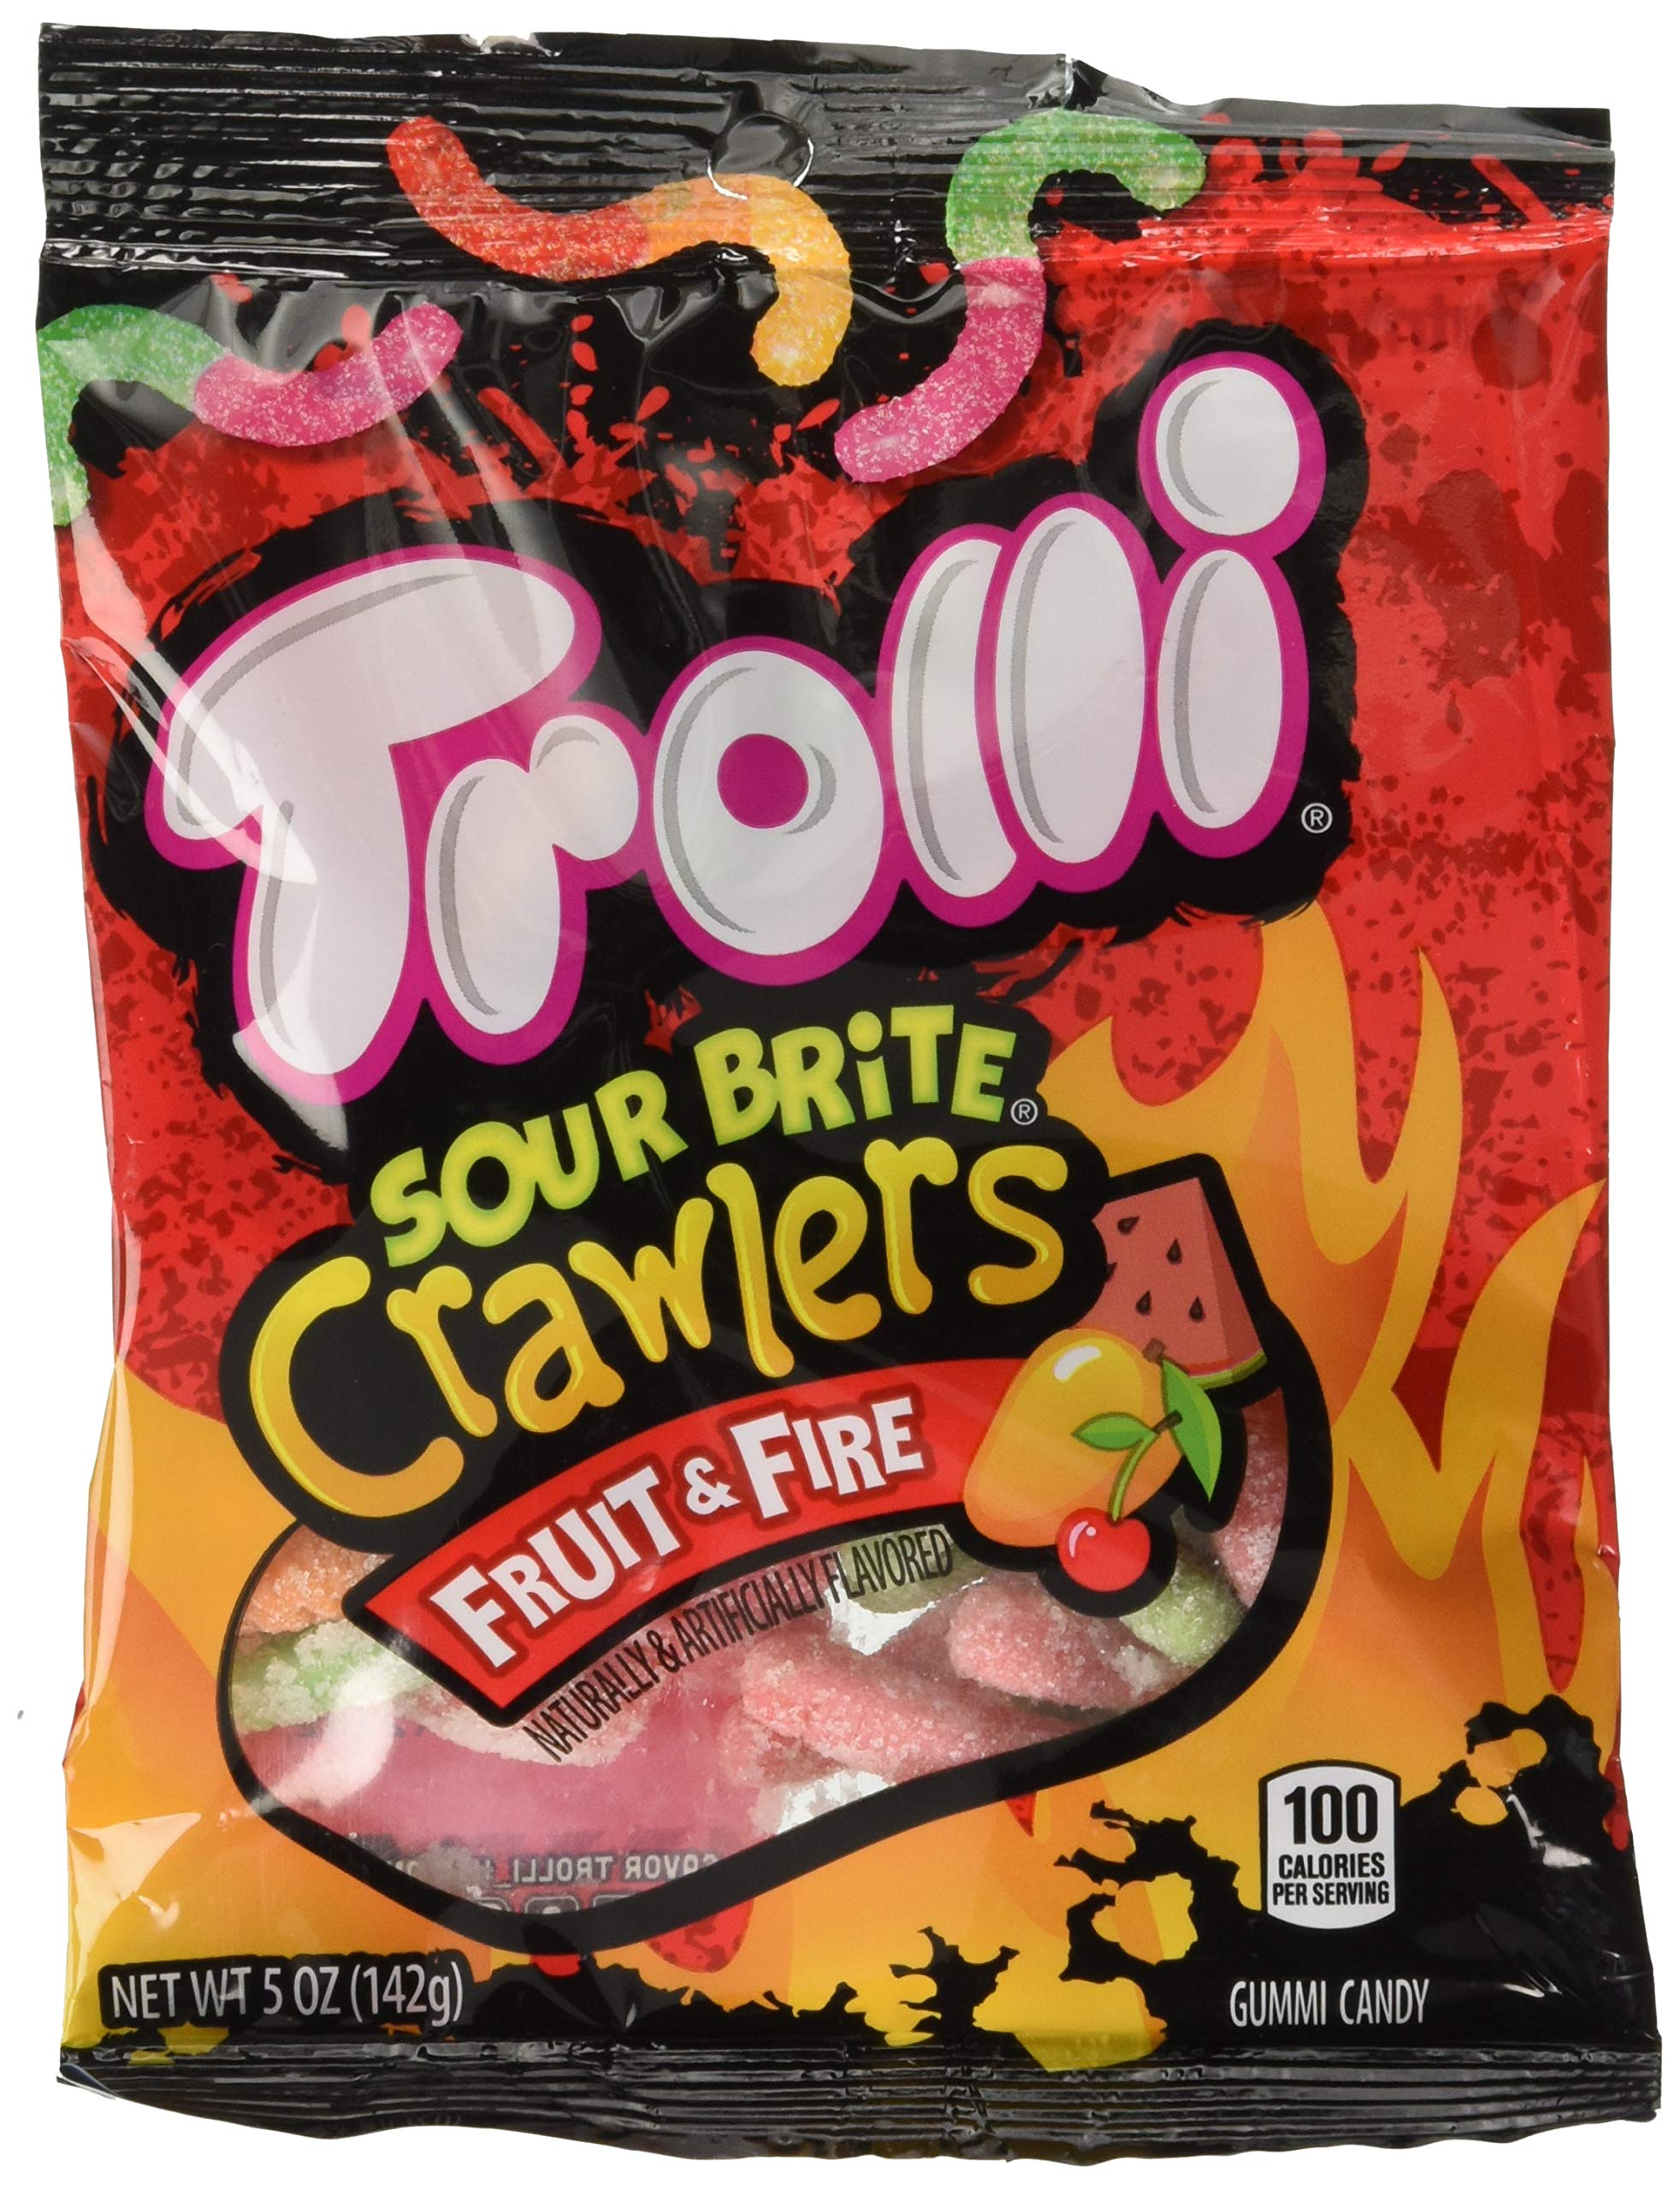 Trolli Sour Brite Crawlers Gummy Worms Fruit & Fire, 5 Ounce Peg Bag (Pack of 12) Sweet, Sour & Spicy Gummy Worms by Trolli (Image #1)